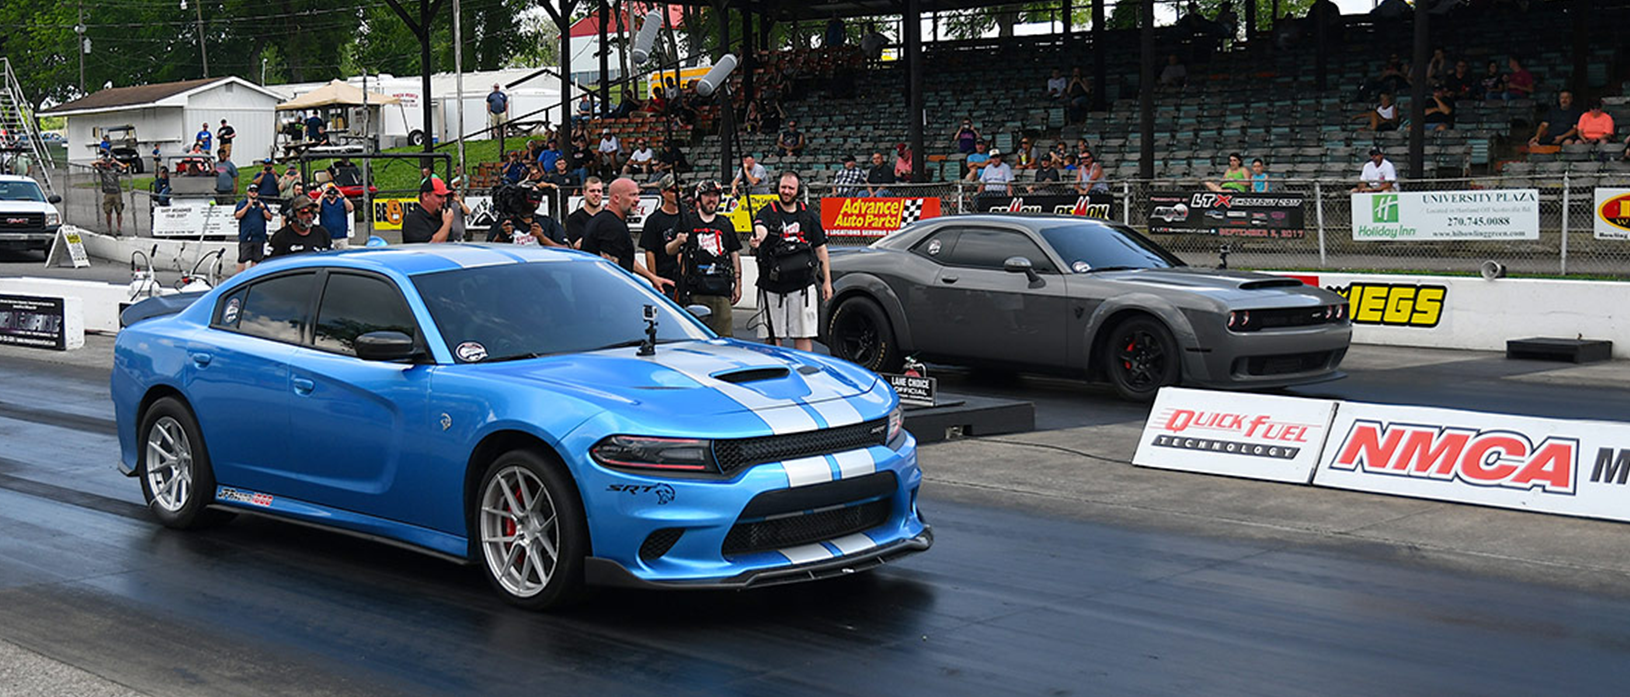 Blue Hellcat racing a gray Demon